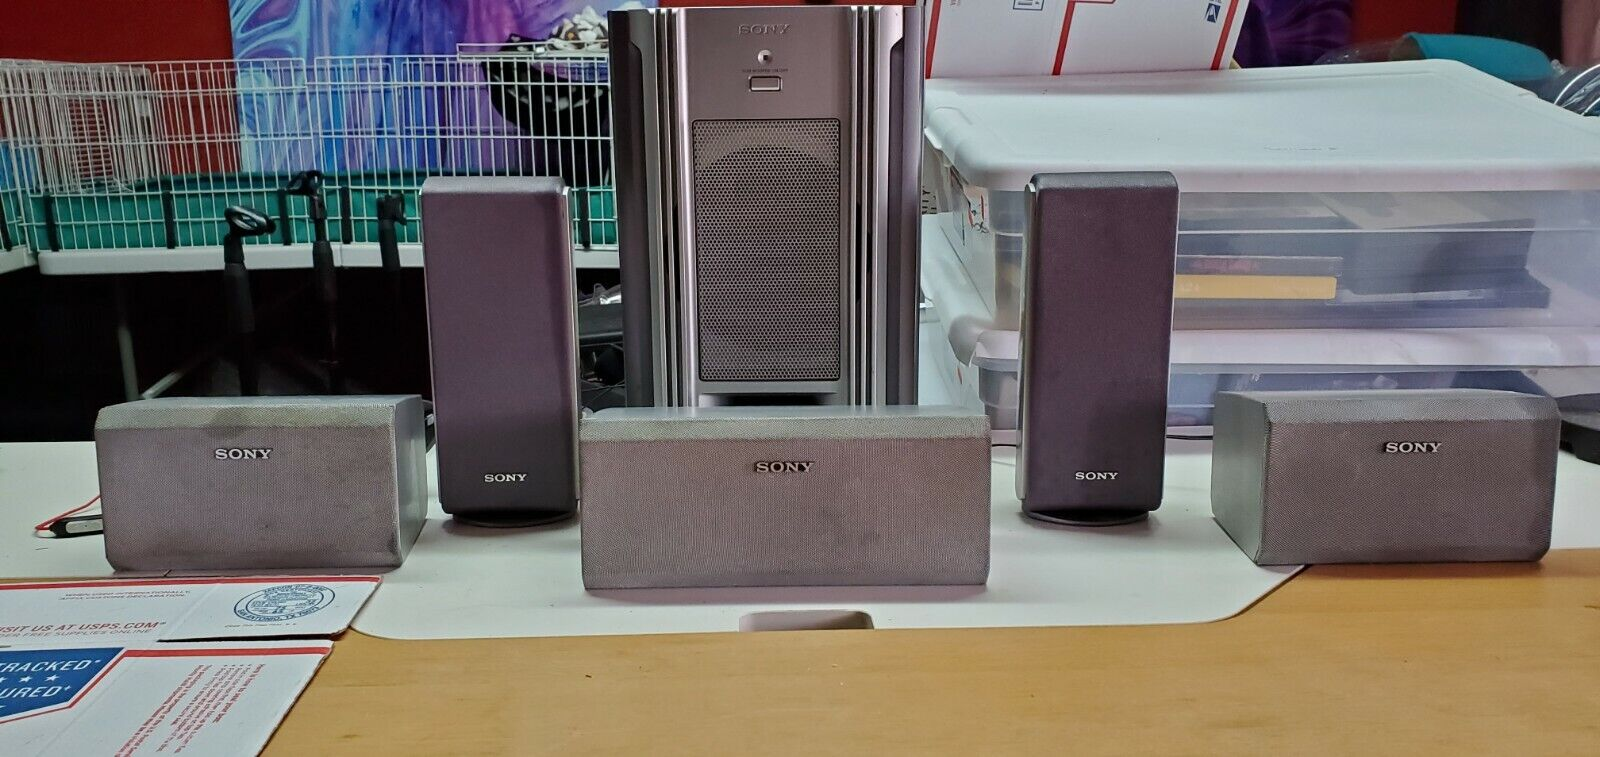 6 Piece Sony Surround Sound System - 5 Speakers + Sub Woofer Tested and Working. Buy it now for 80.00